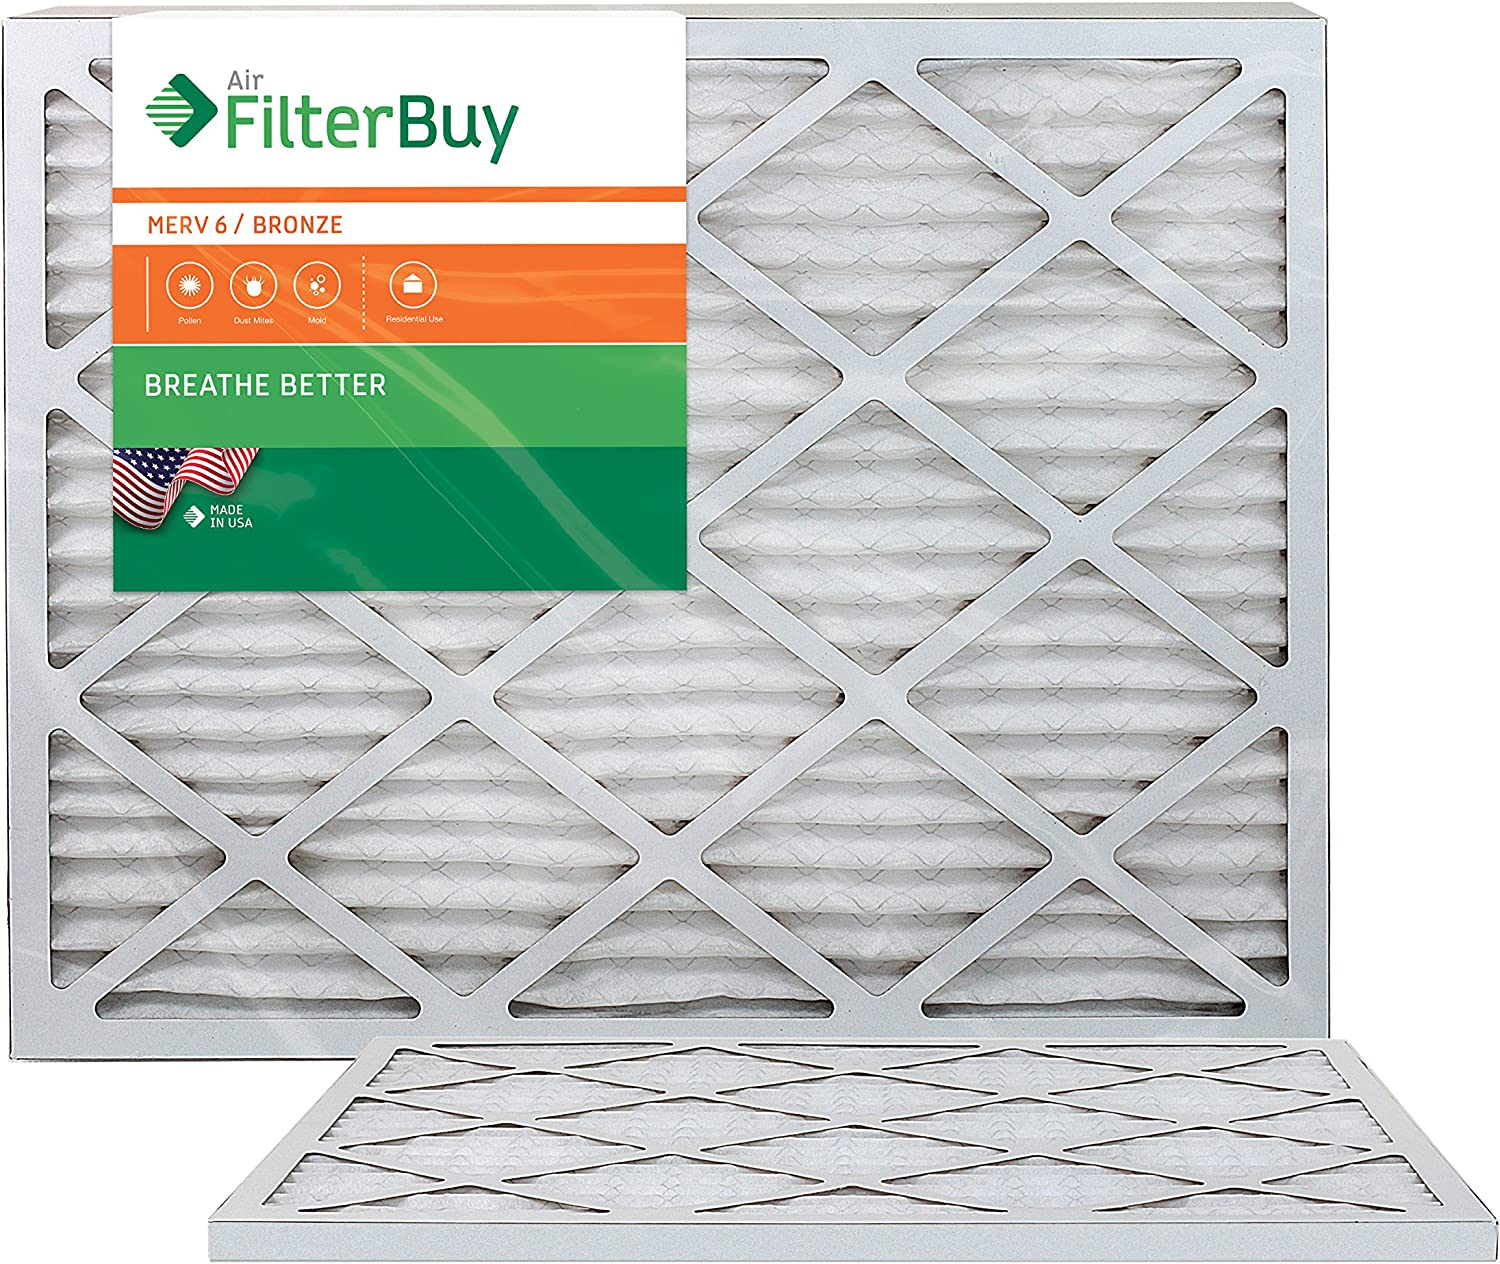 100/% produced in the USA. Pack of 2 Filters AFB Bronze MERV 6 20x20x2 Pleated AC Furnace Air Filter